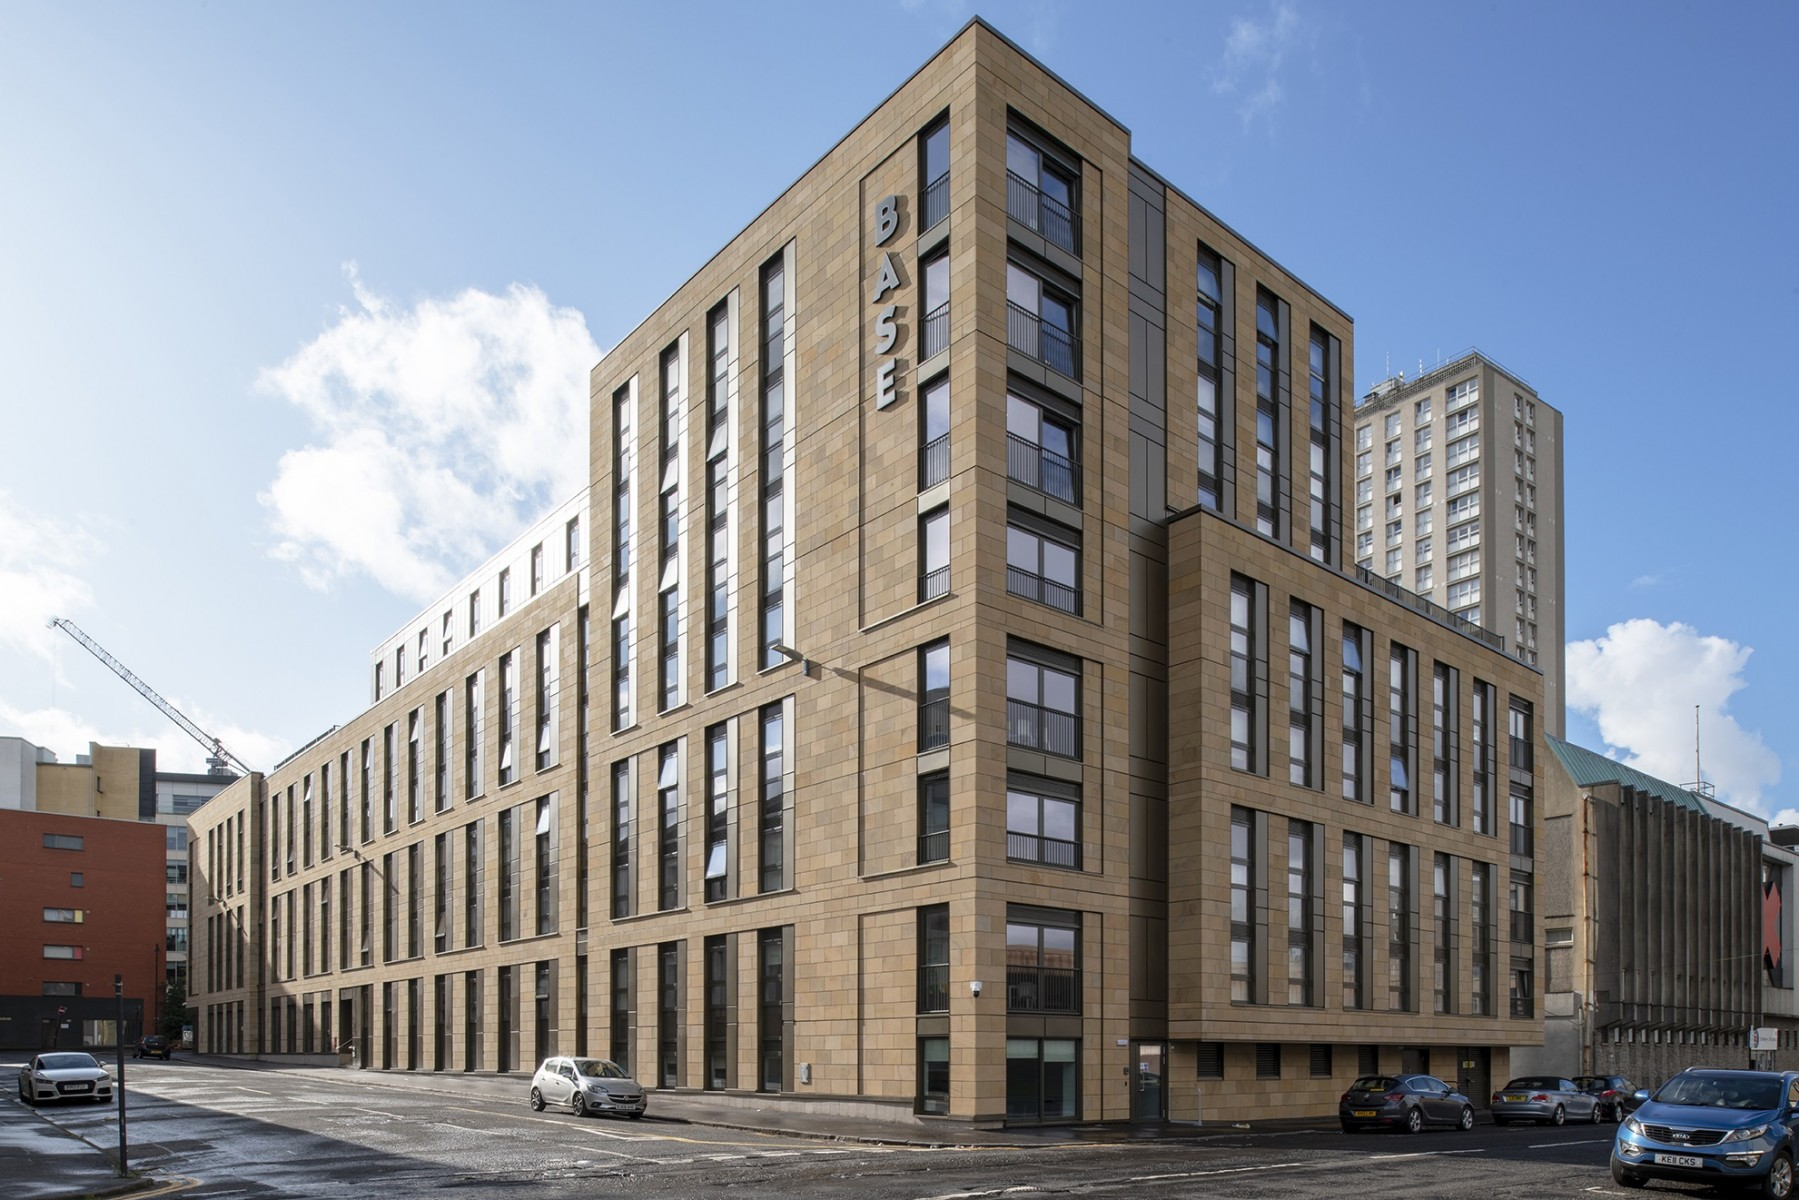 Glasgow's newest student flats in tune with the neighbours : October 2019 : News : Architecture in profile the building environment in Scotland - Urban Realm